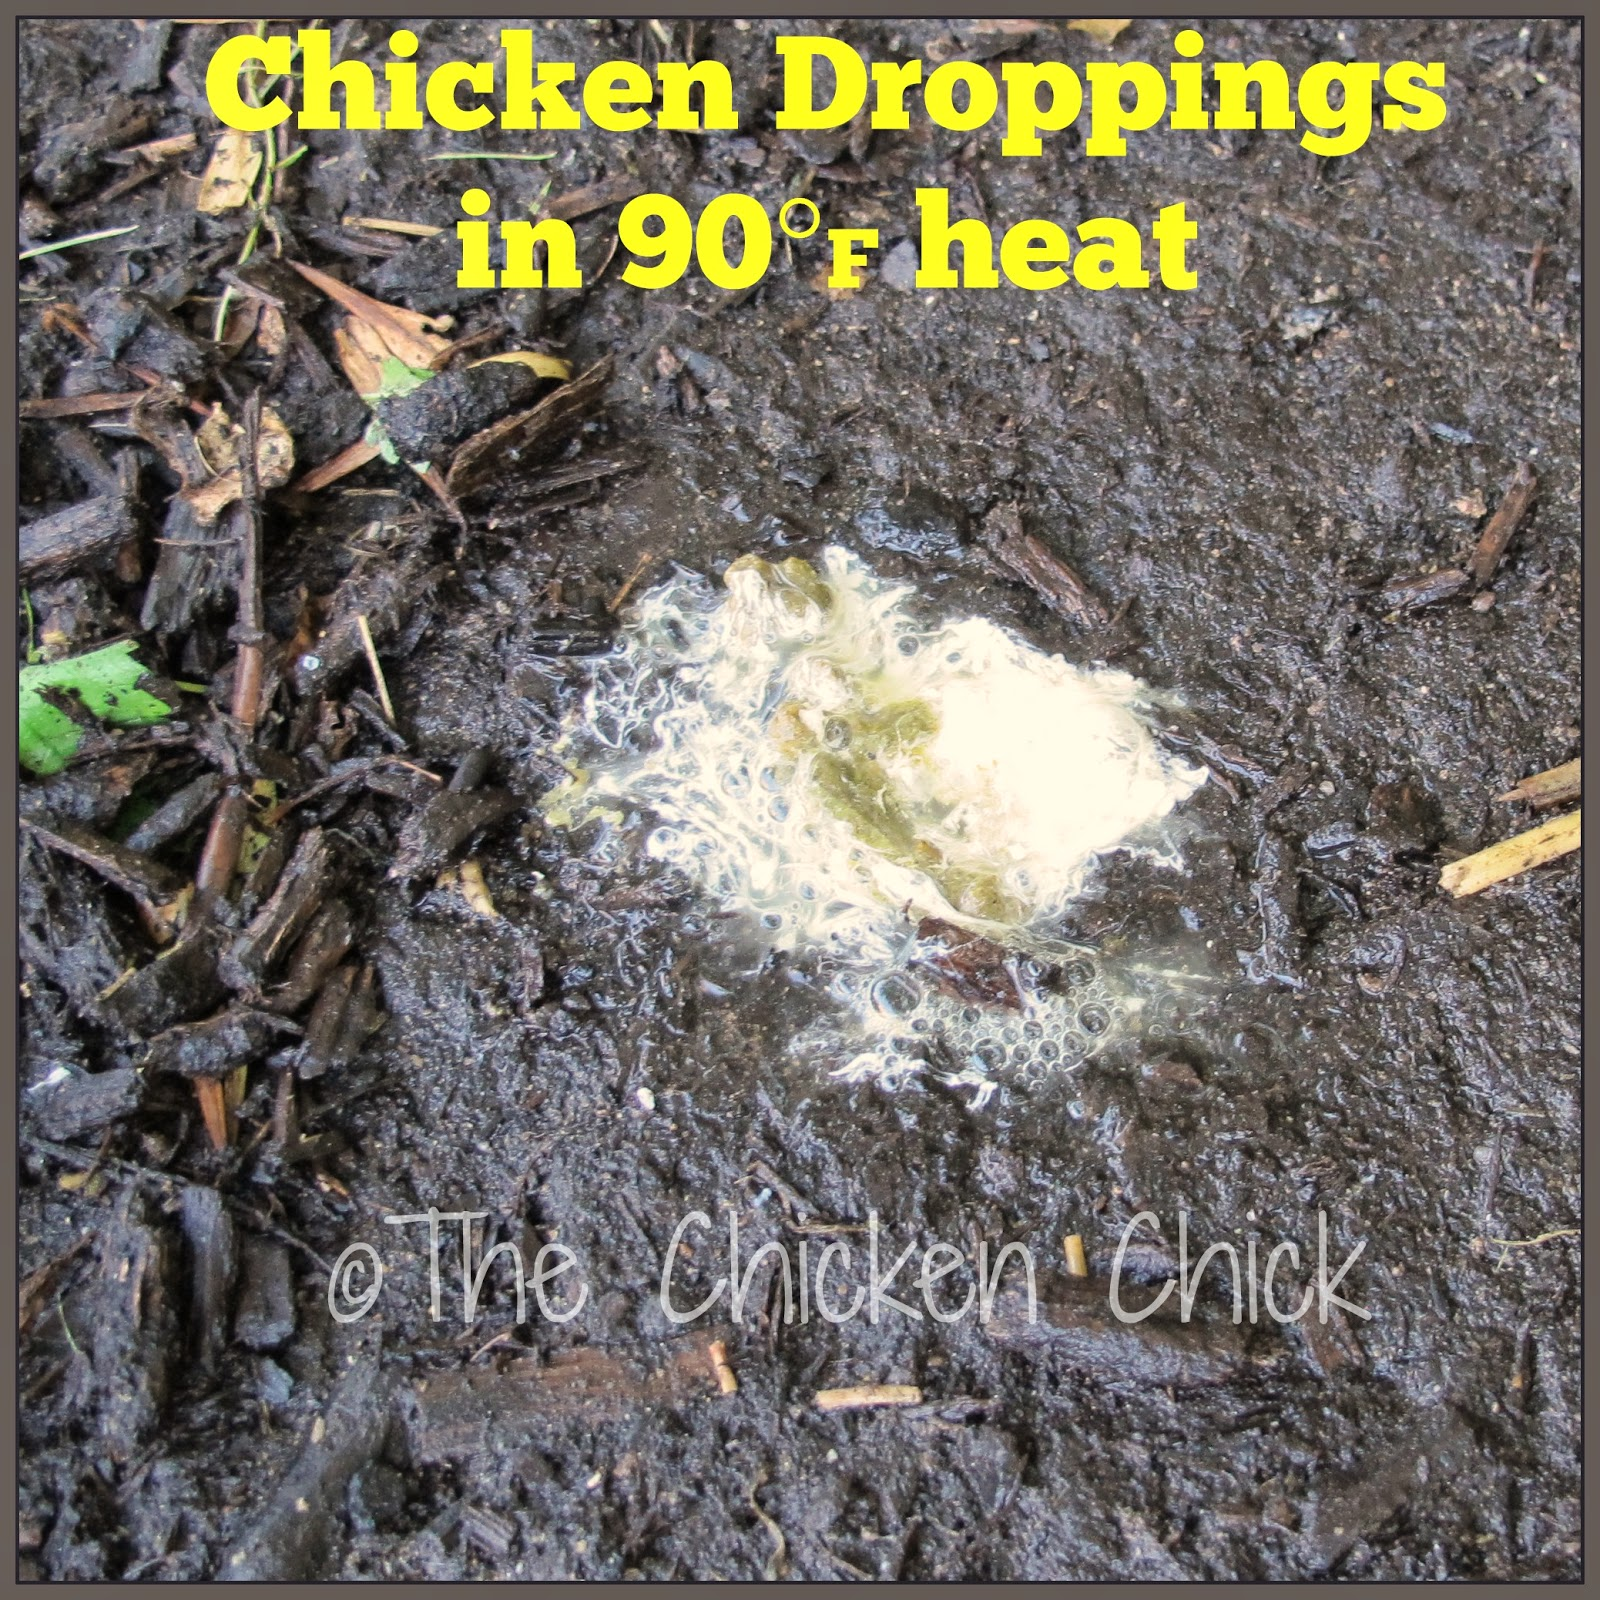 Normal chicken poop in high heat due to increased water intake.